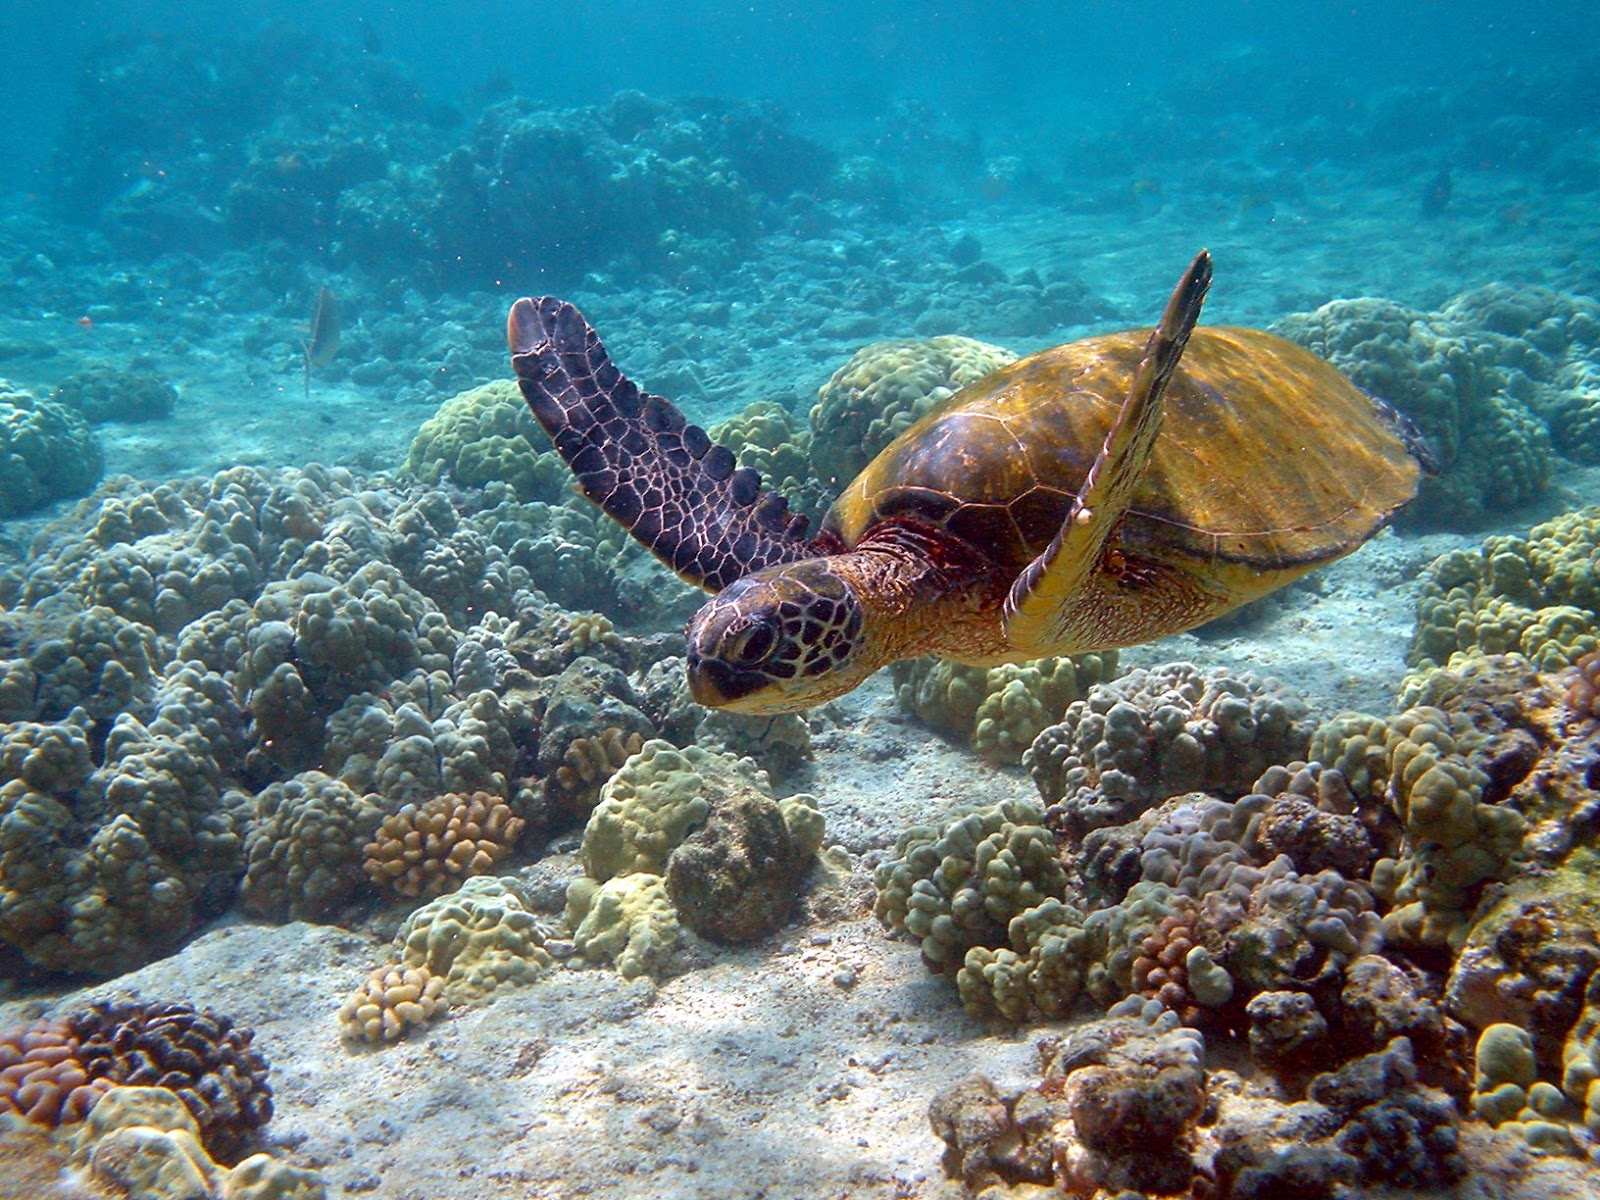 Reptiles: Hawaii turtle